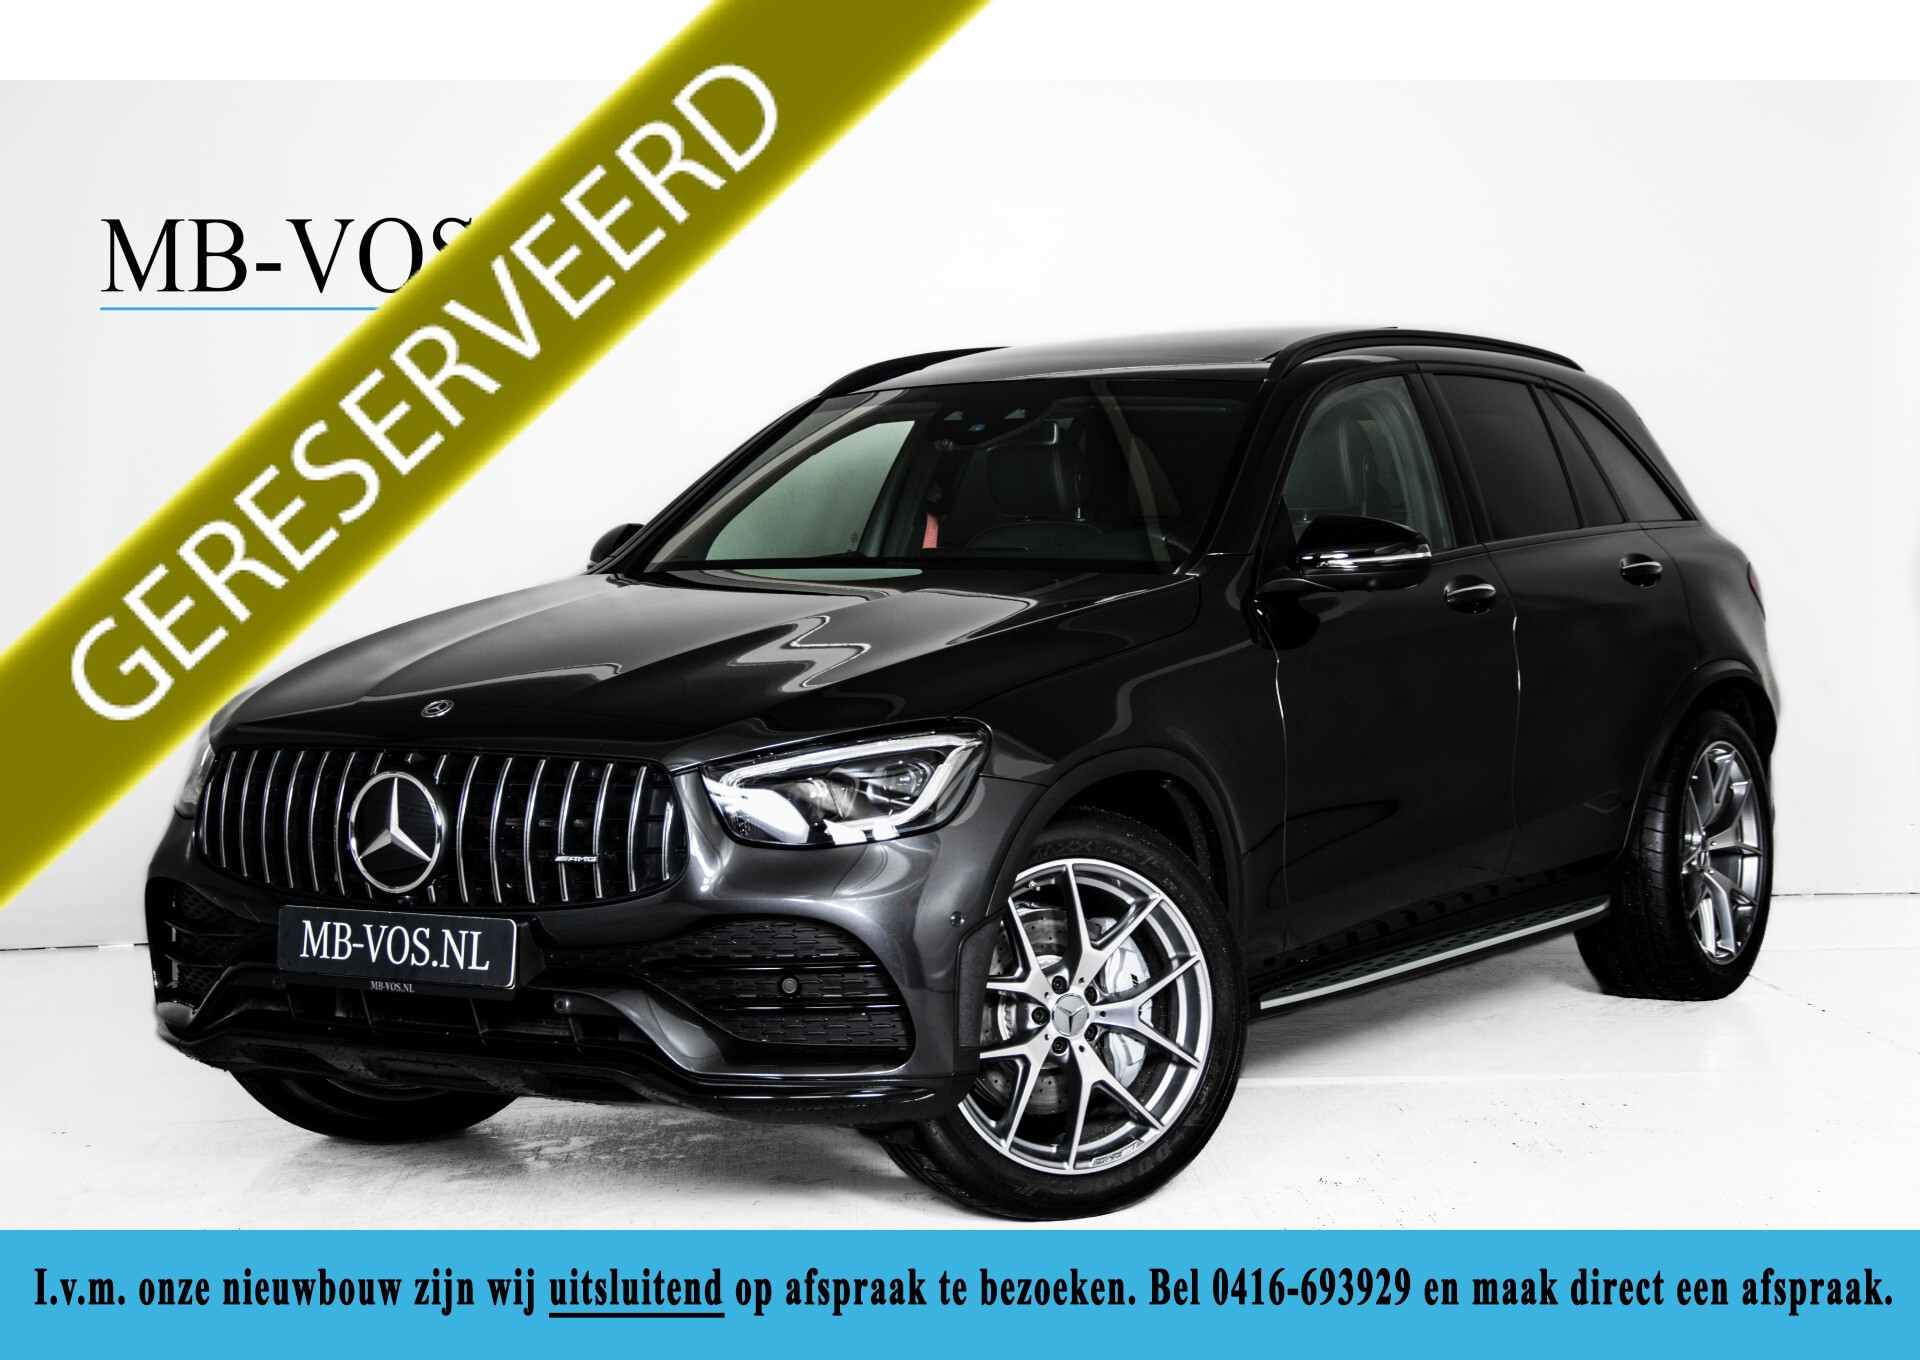 Mercedes-Benz GLC 43 AMG 4-M Night Pano/Sportuitlaat/Keyless/Distronic/Widescreen/MBUX/Trekhaak Aut9 Foto 1